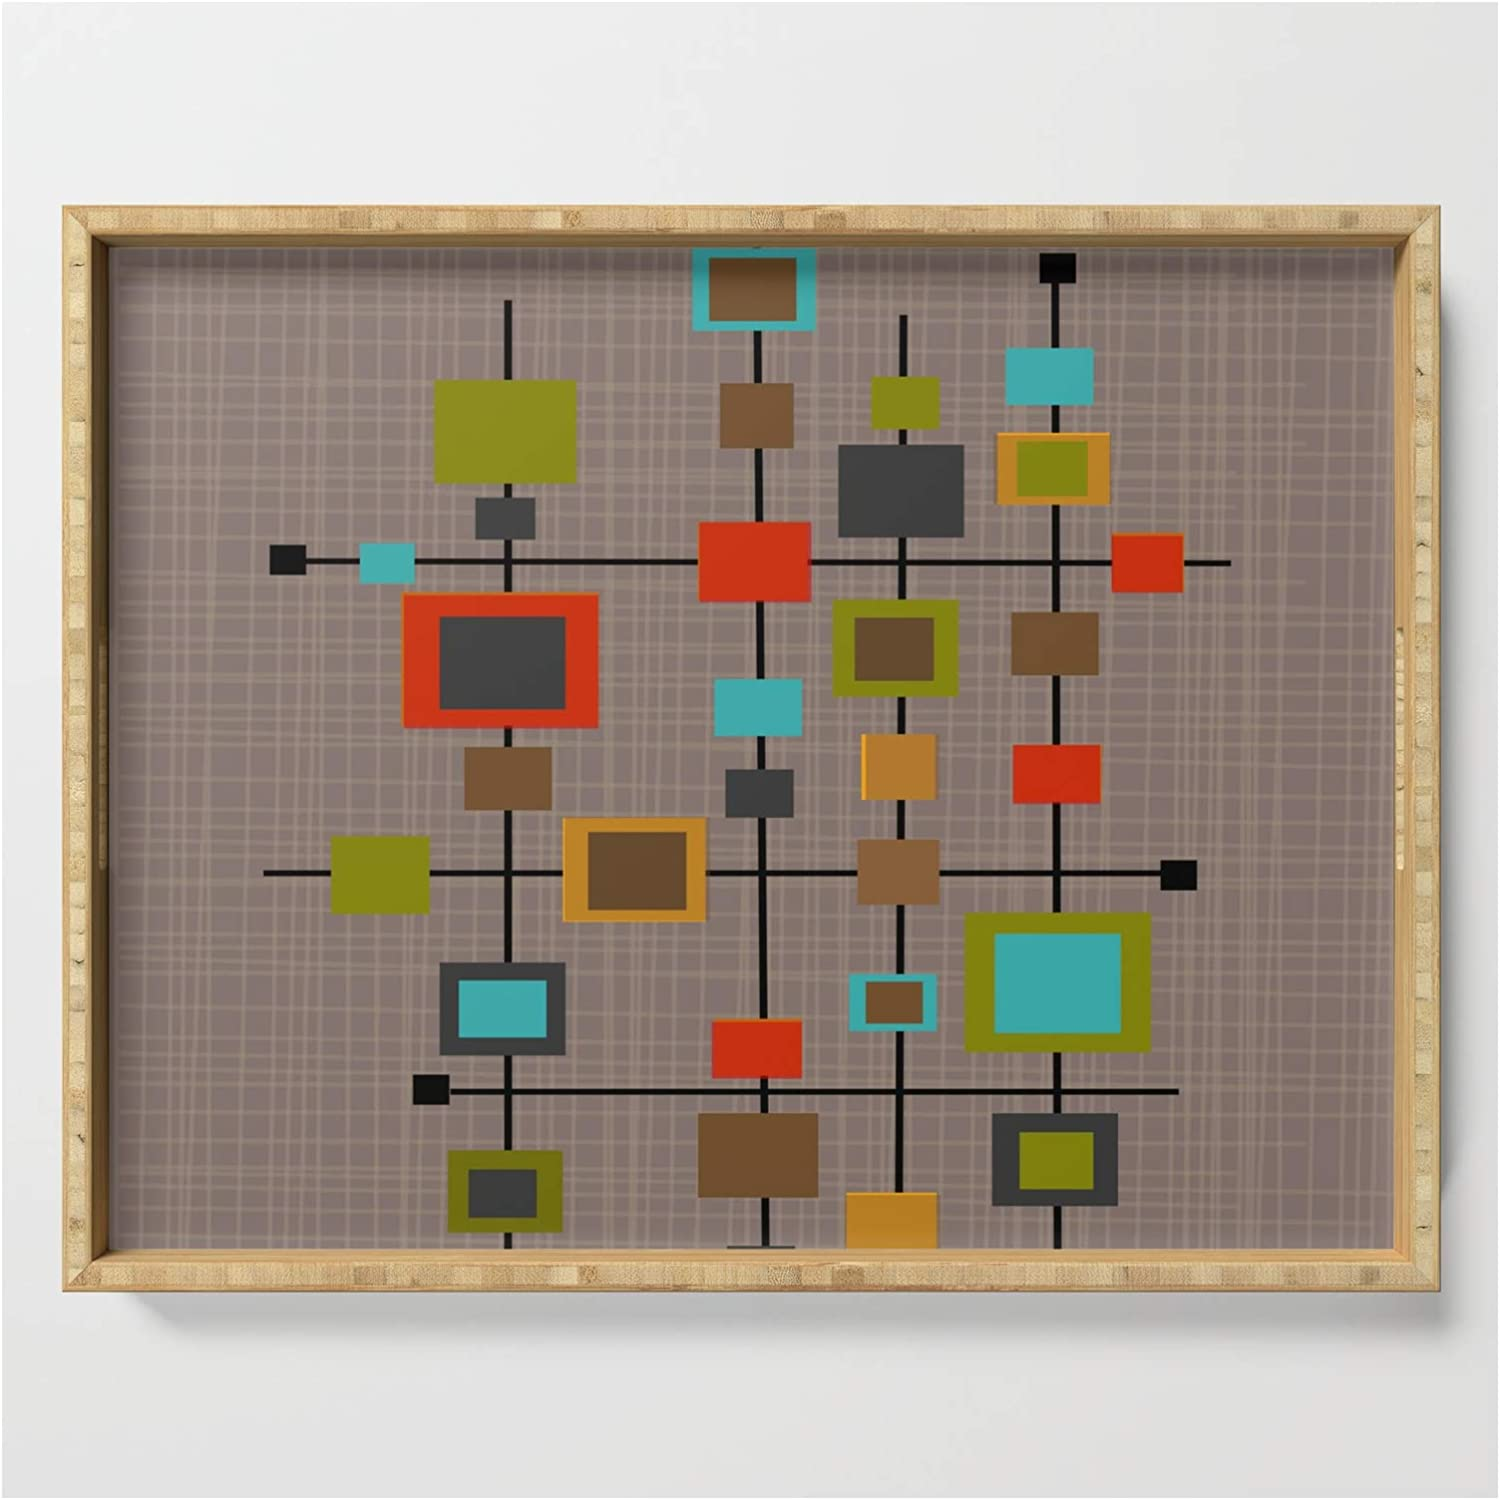 Mid-century Modern Squares Pattern Shipping New product! New type included by Kippygirl Serving Tray on